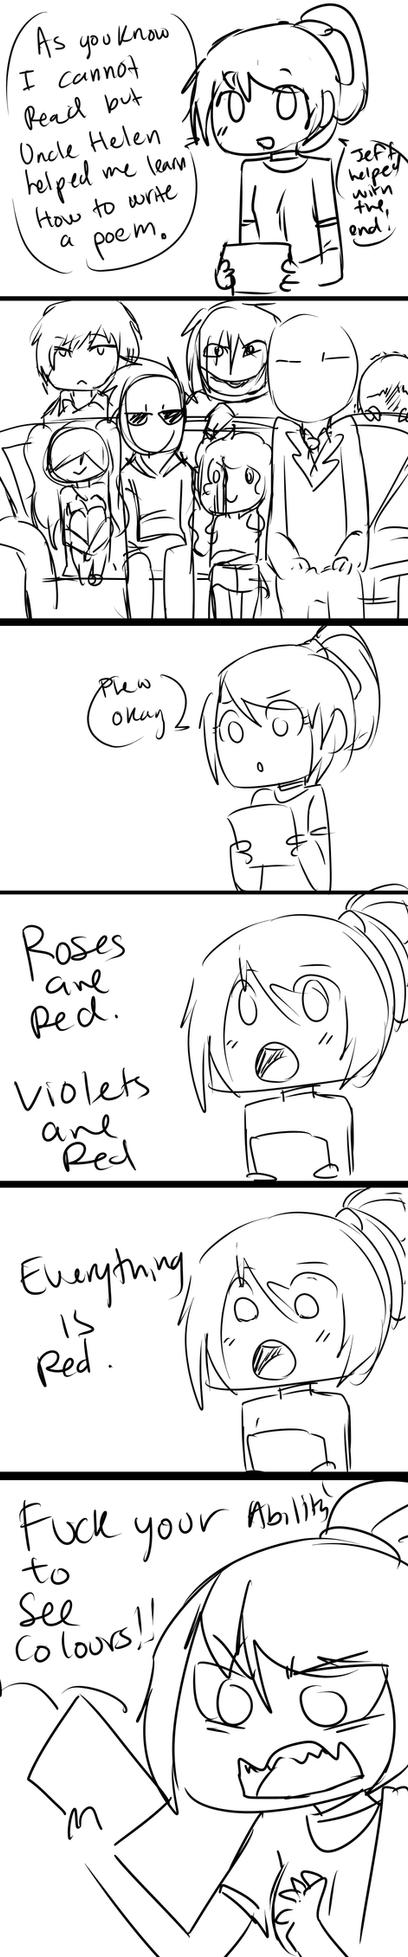 Roses are red By Lazari by Chibi-Works